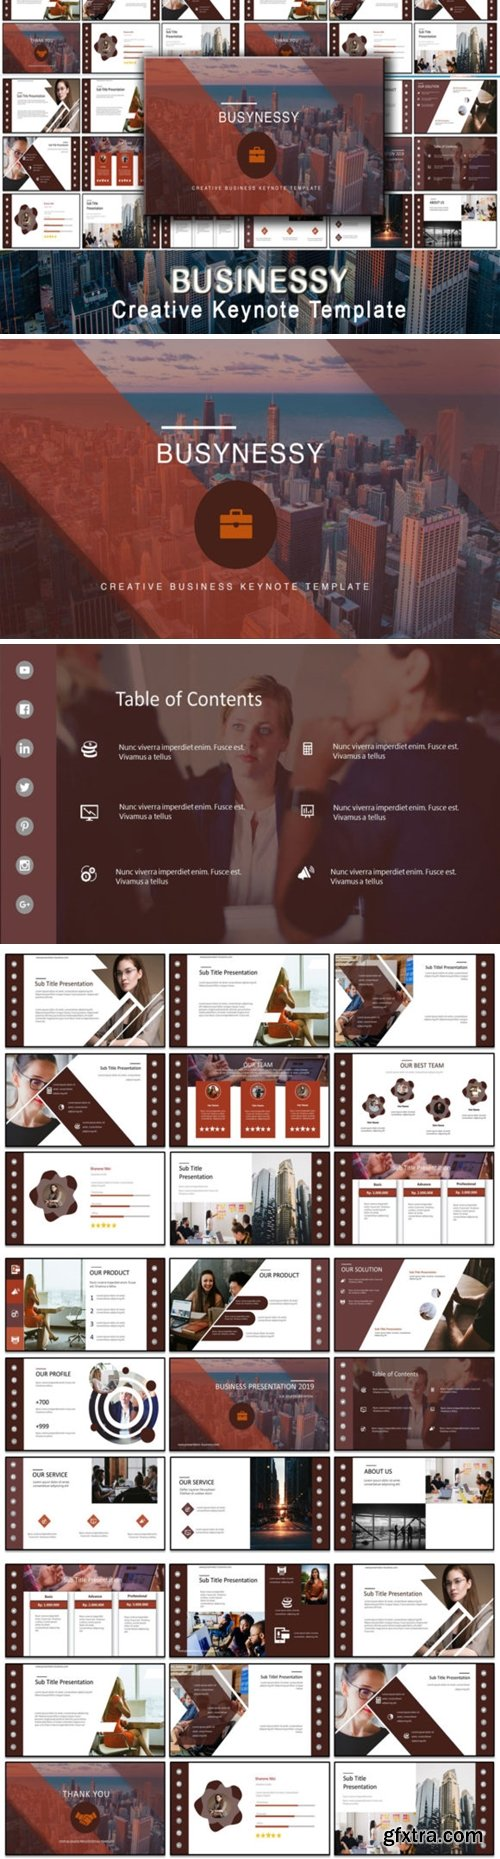 Businessy - Business Keynote Template 2013658